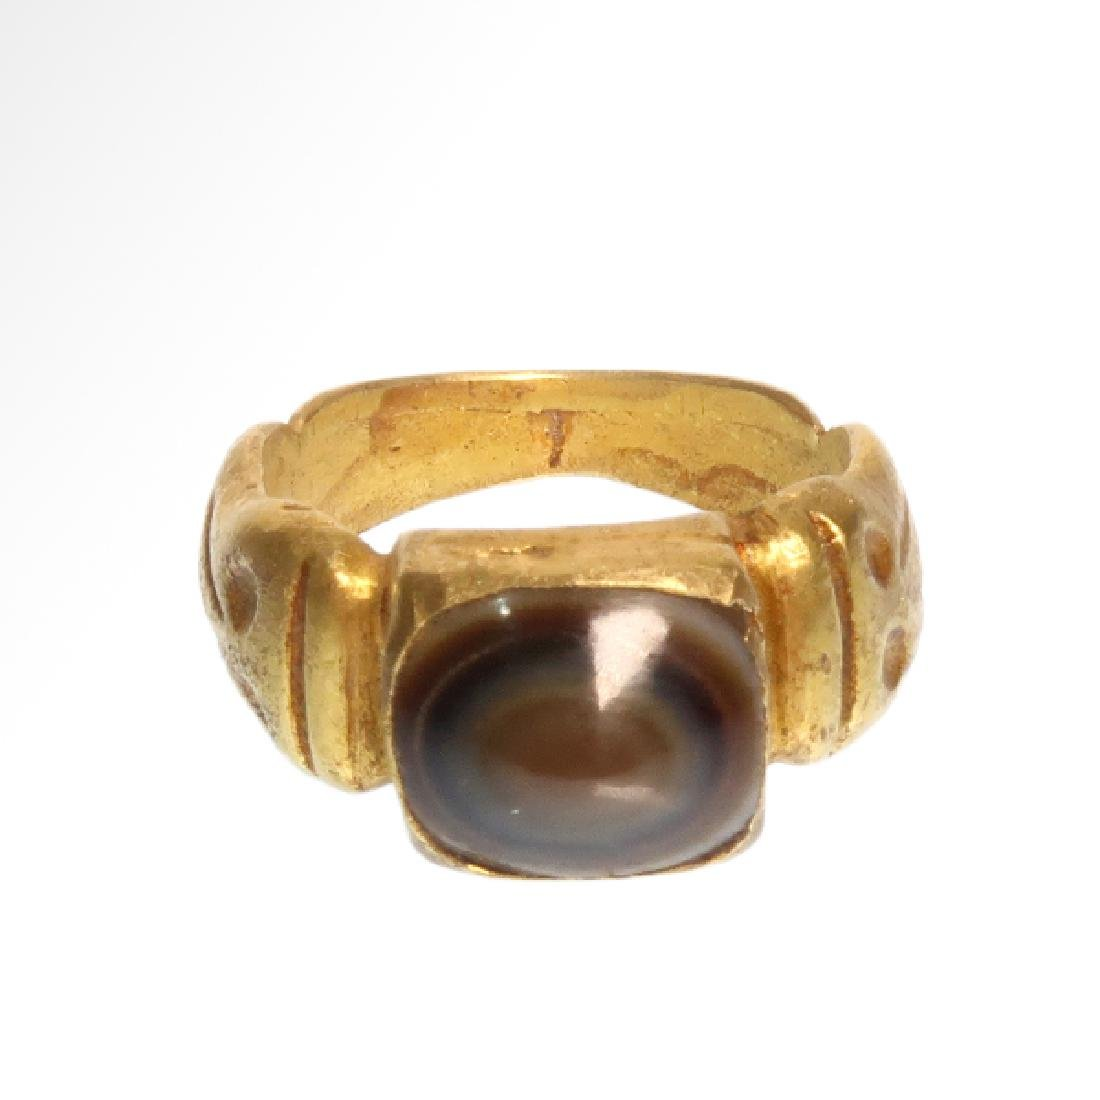 Roman Gold Ring with Banded Agate Ring-stone, 2nd